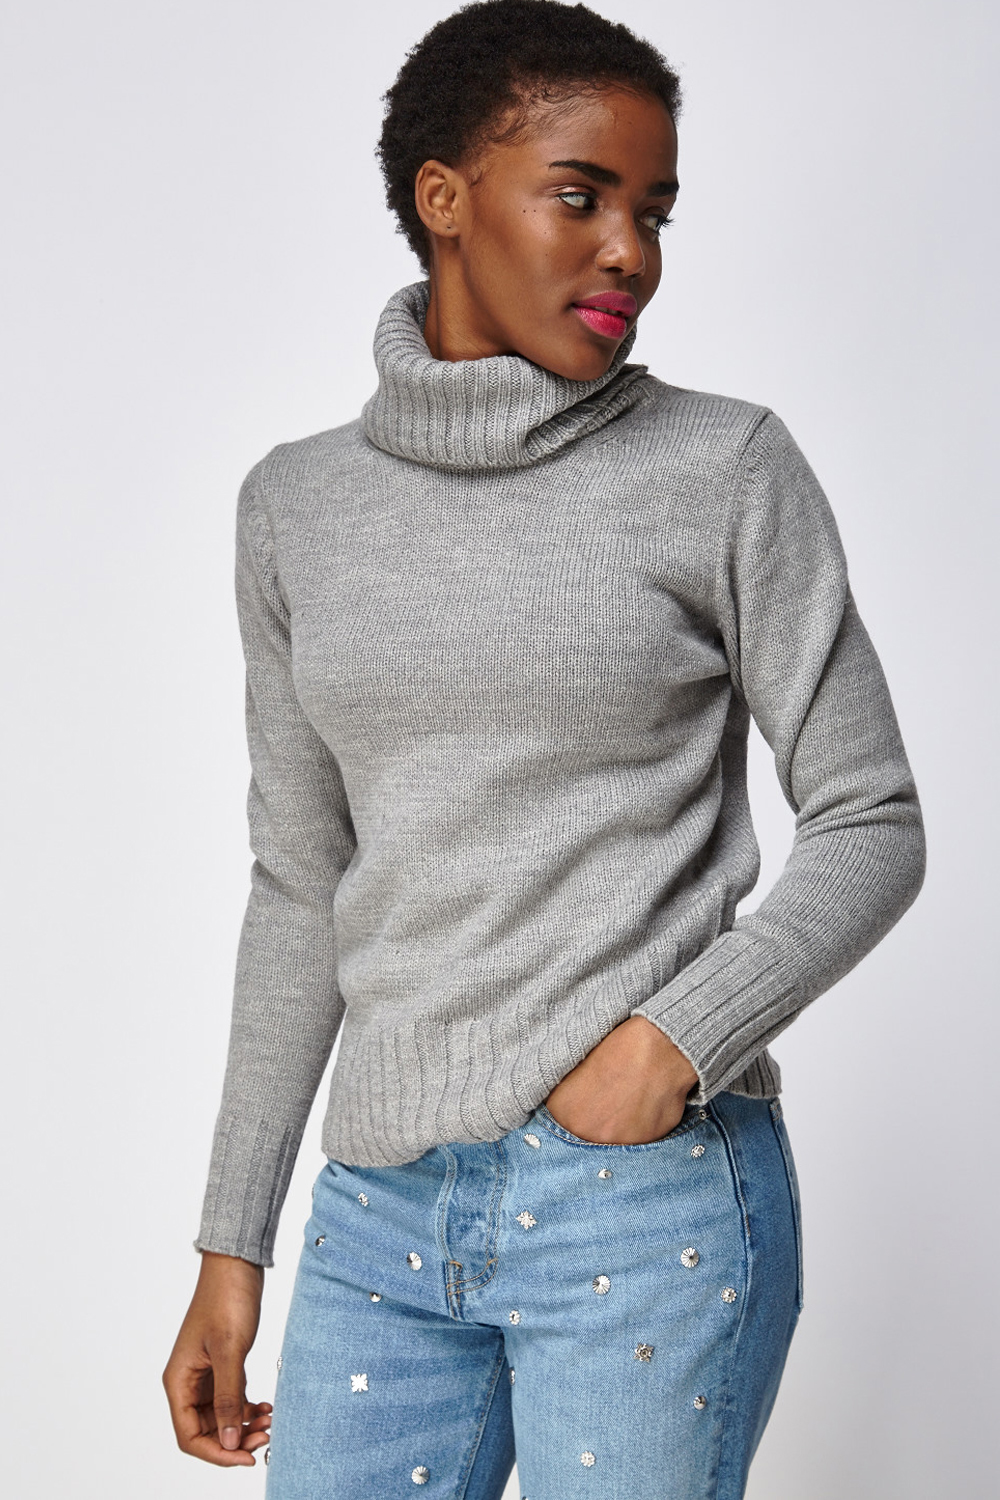 b8e3cfff7c68f9 Ribbed Trim Turtle Neck Knitted Jumper - Just £5